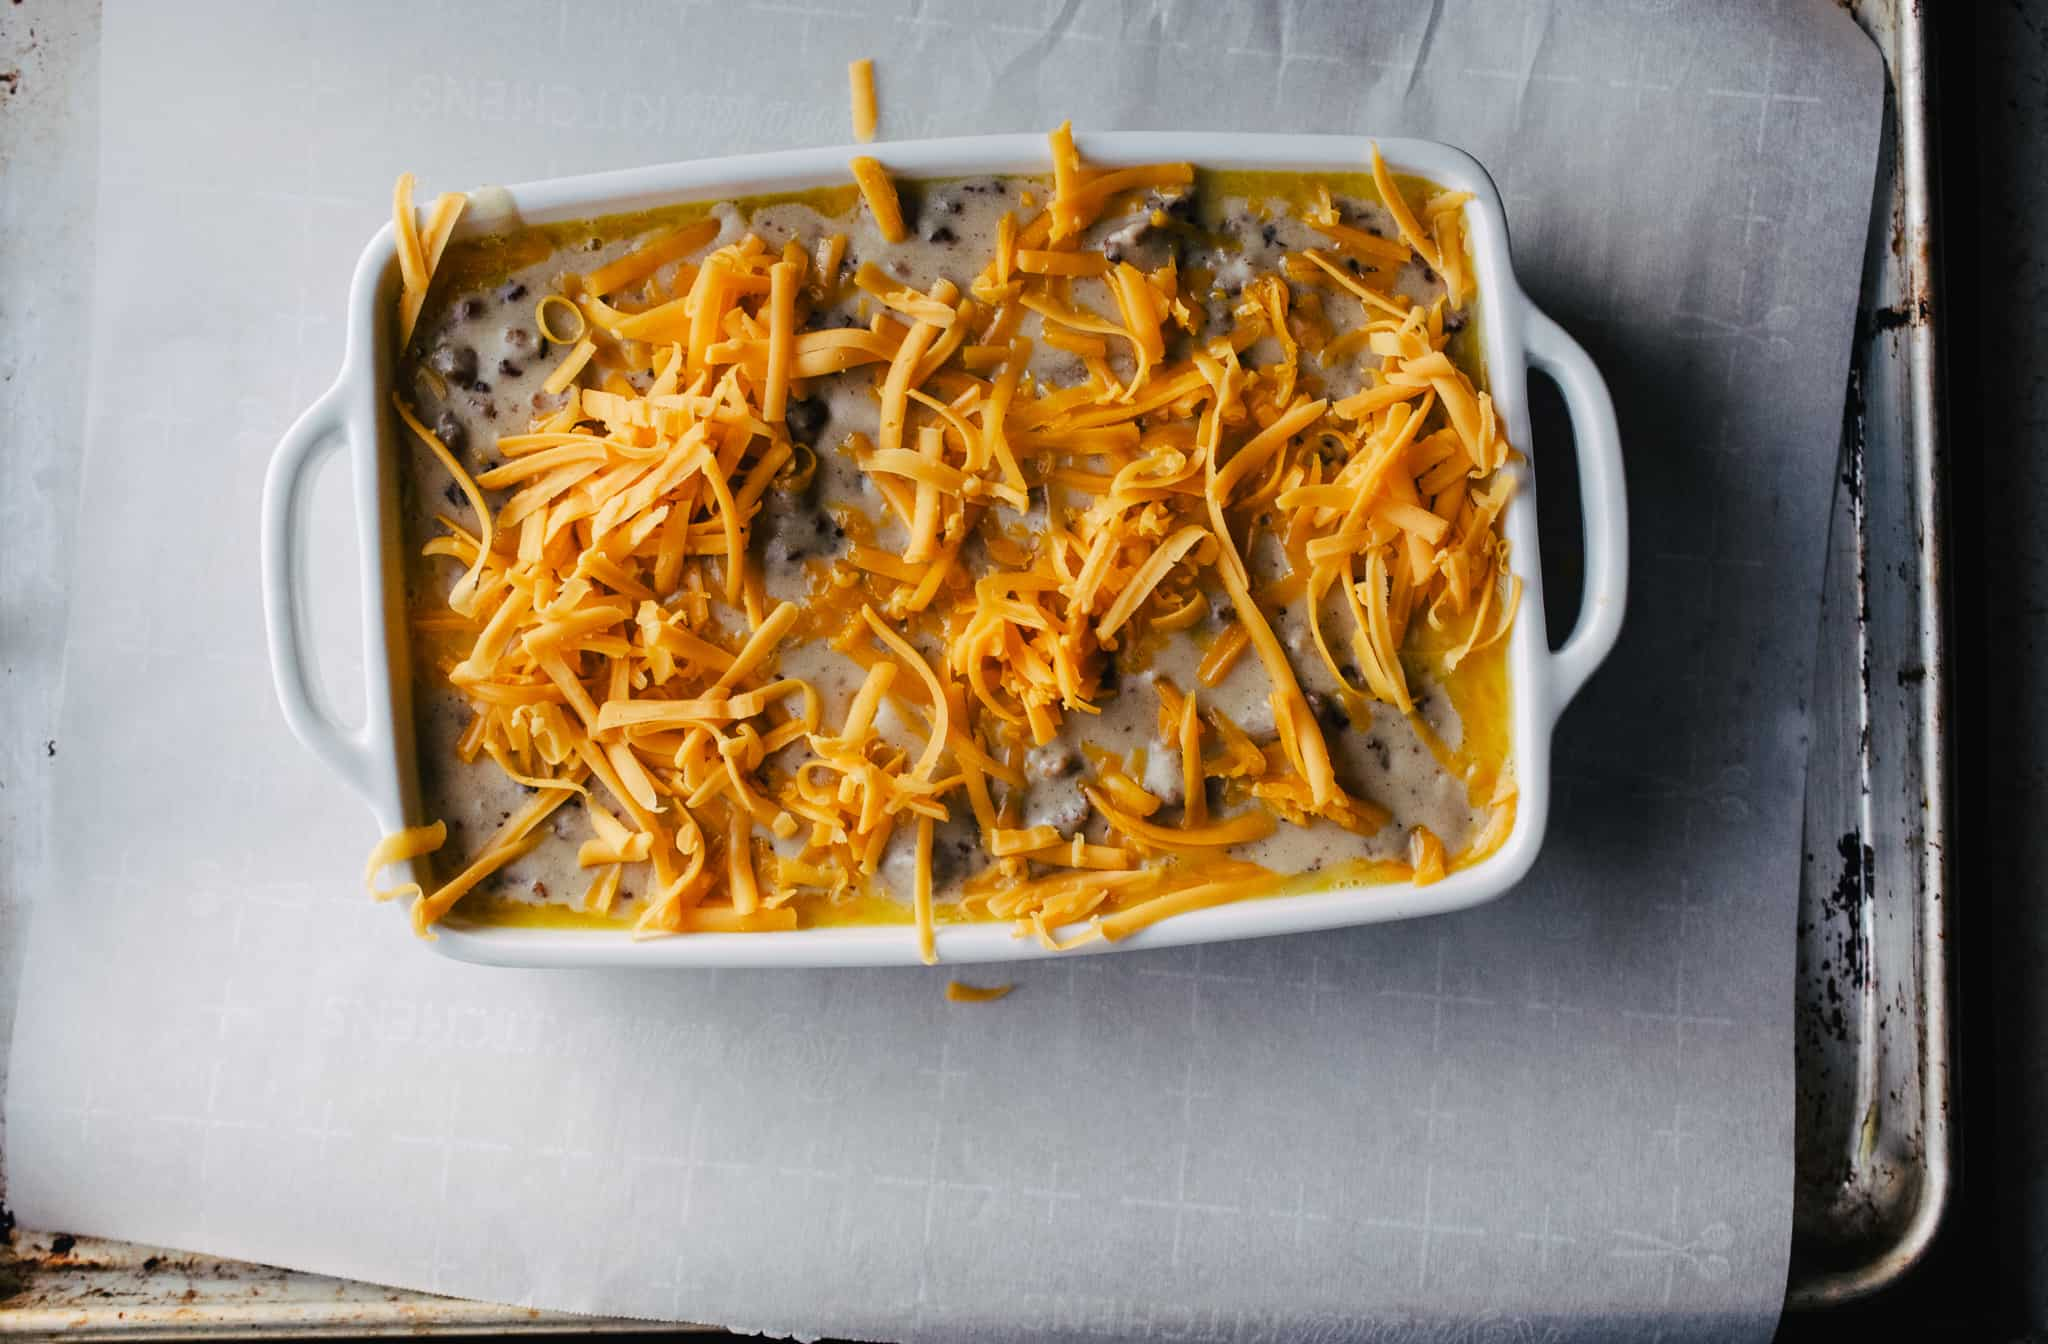 white casserole dish with handles with uncooked shredded cheese topped sausage gravy casserole on parchment paper lined aluminum baking sheet